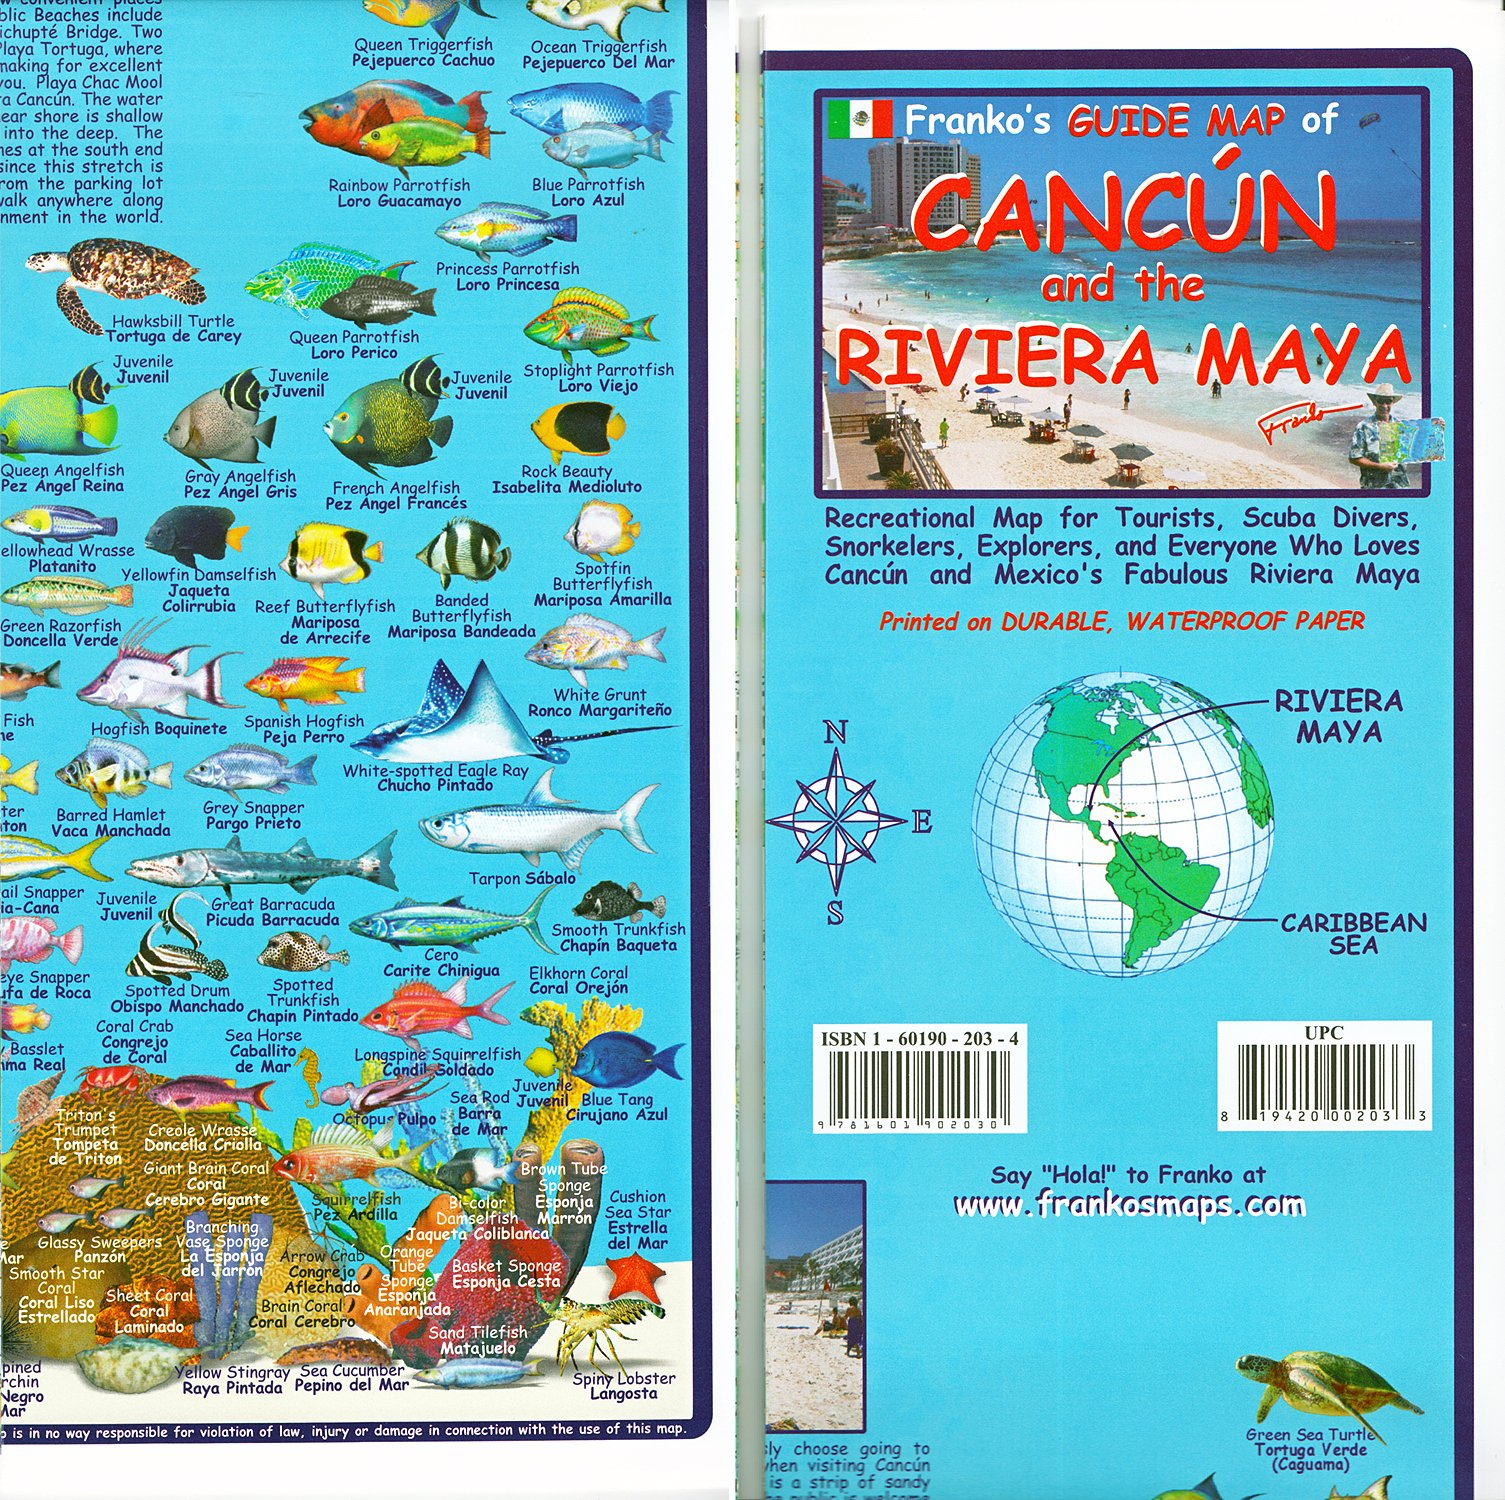 Franko\'s Guide Map of Cancun and the Riviera Maya (English and ...